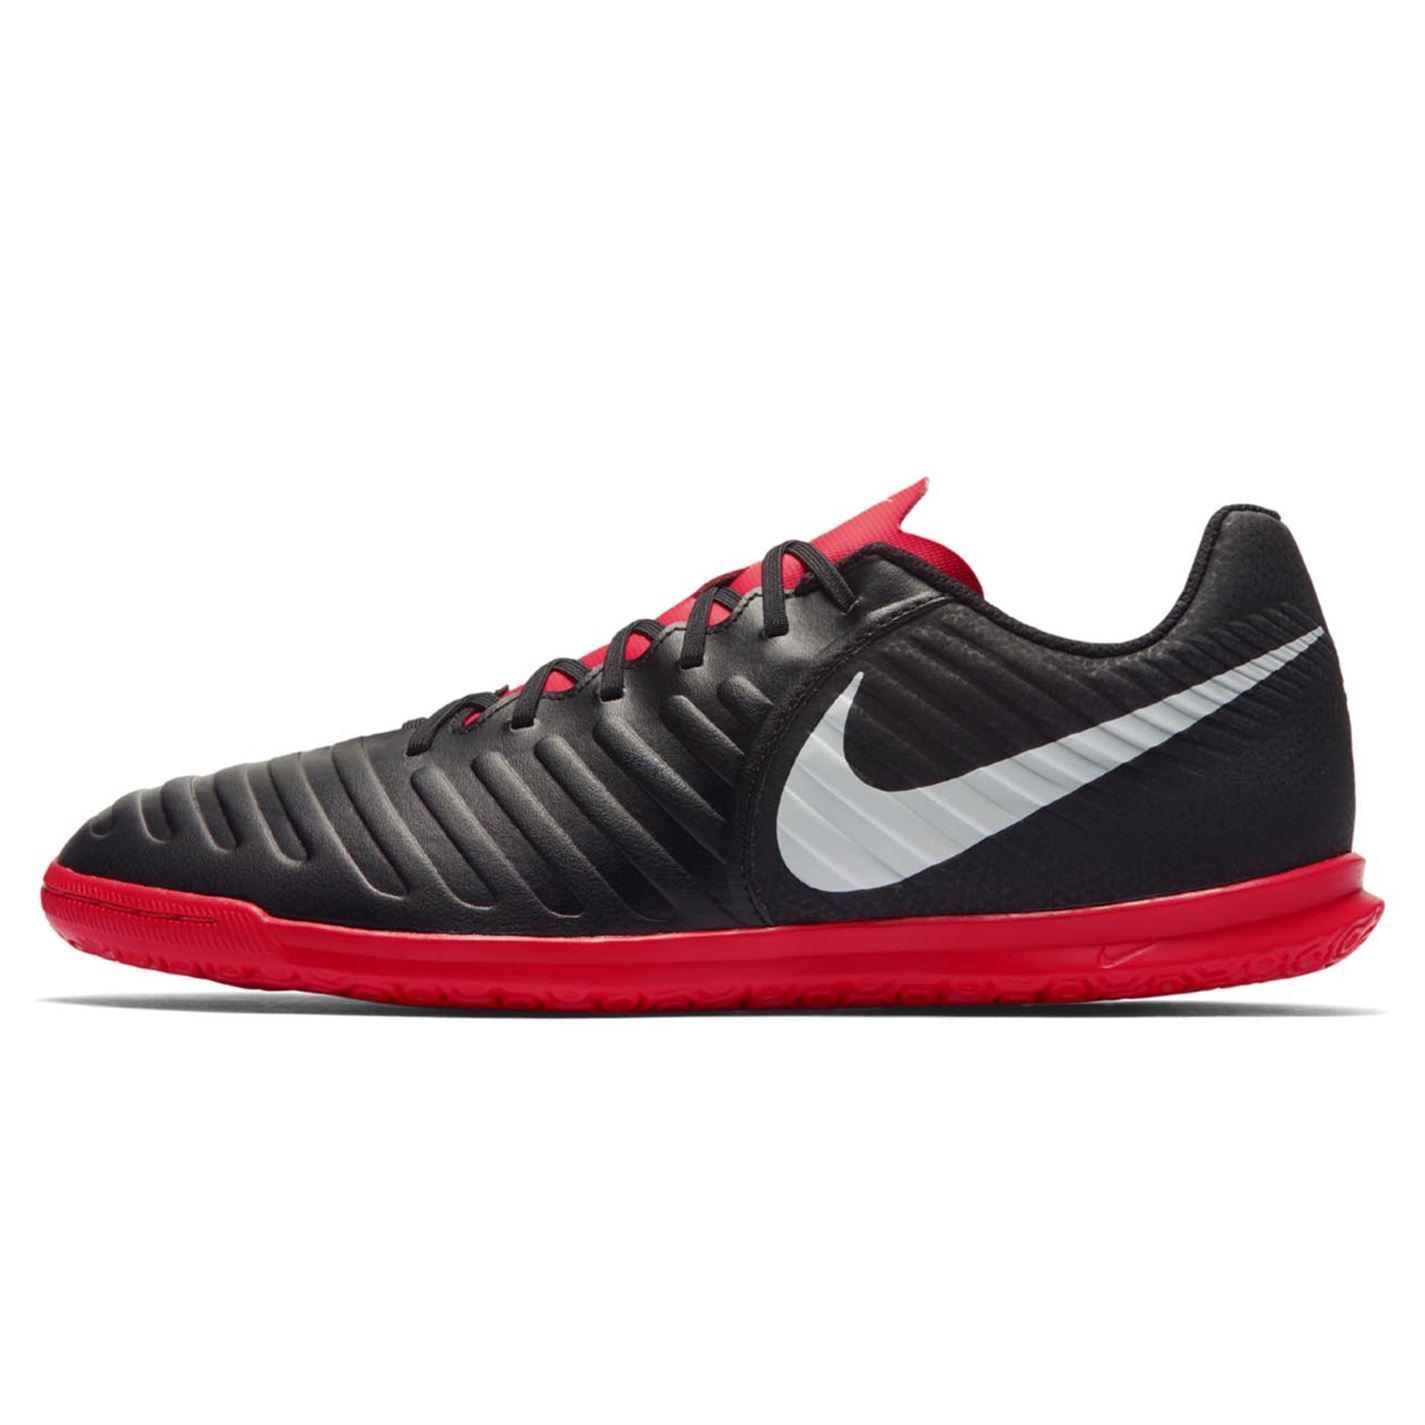 sale retailer 8673e 08819 ... Nike Tiempo Legend Club Indoor Football Trainers Mens Soccer Futsal  Shoes